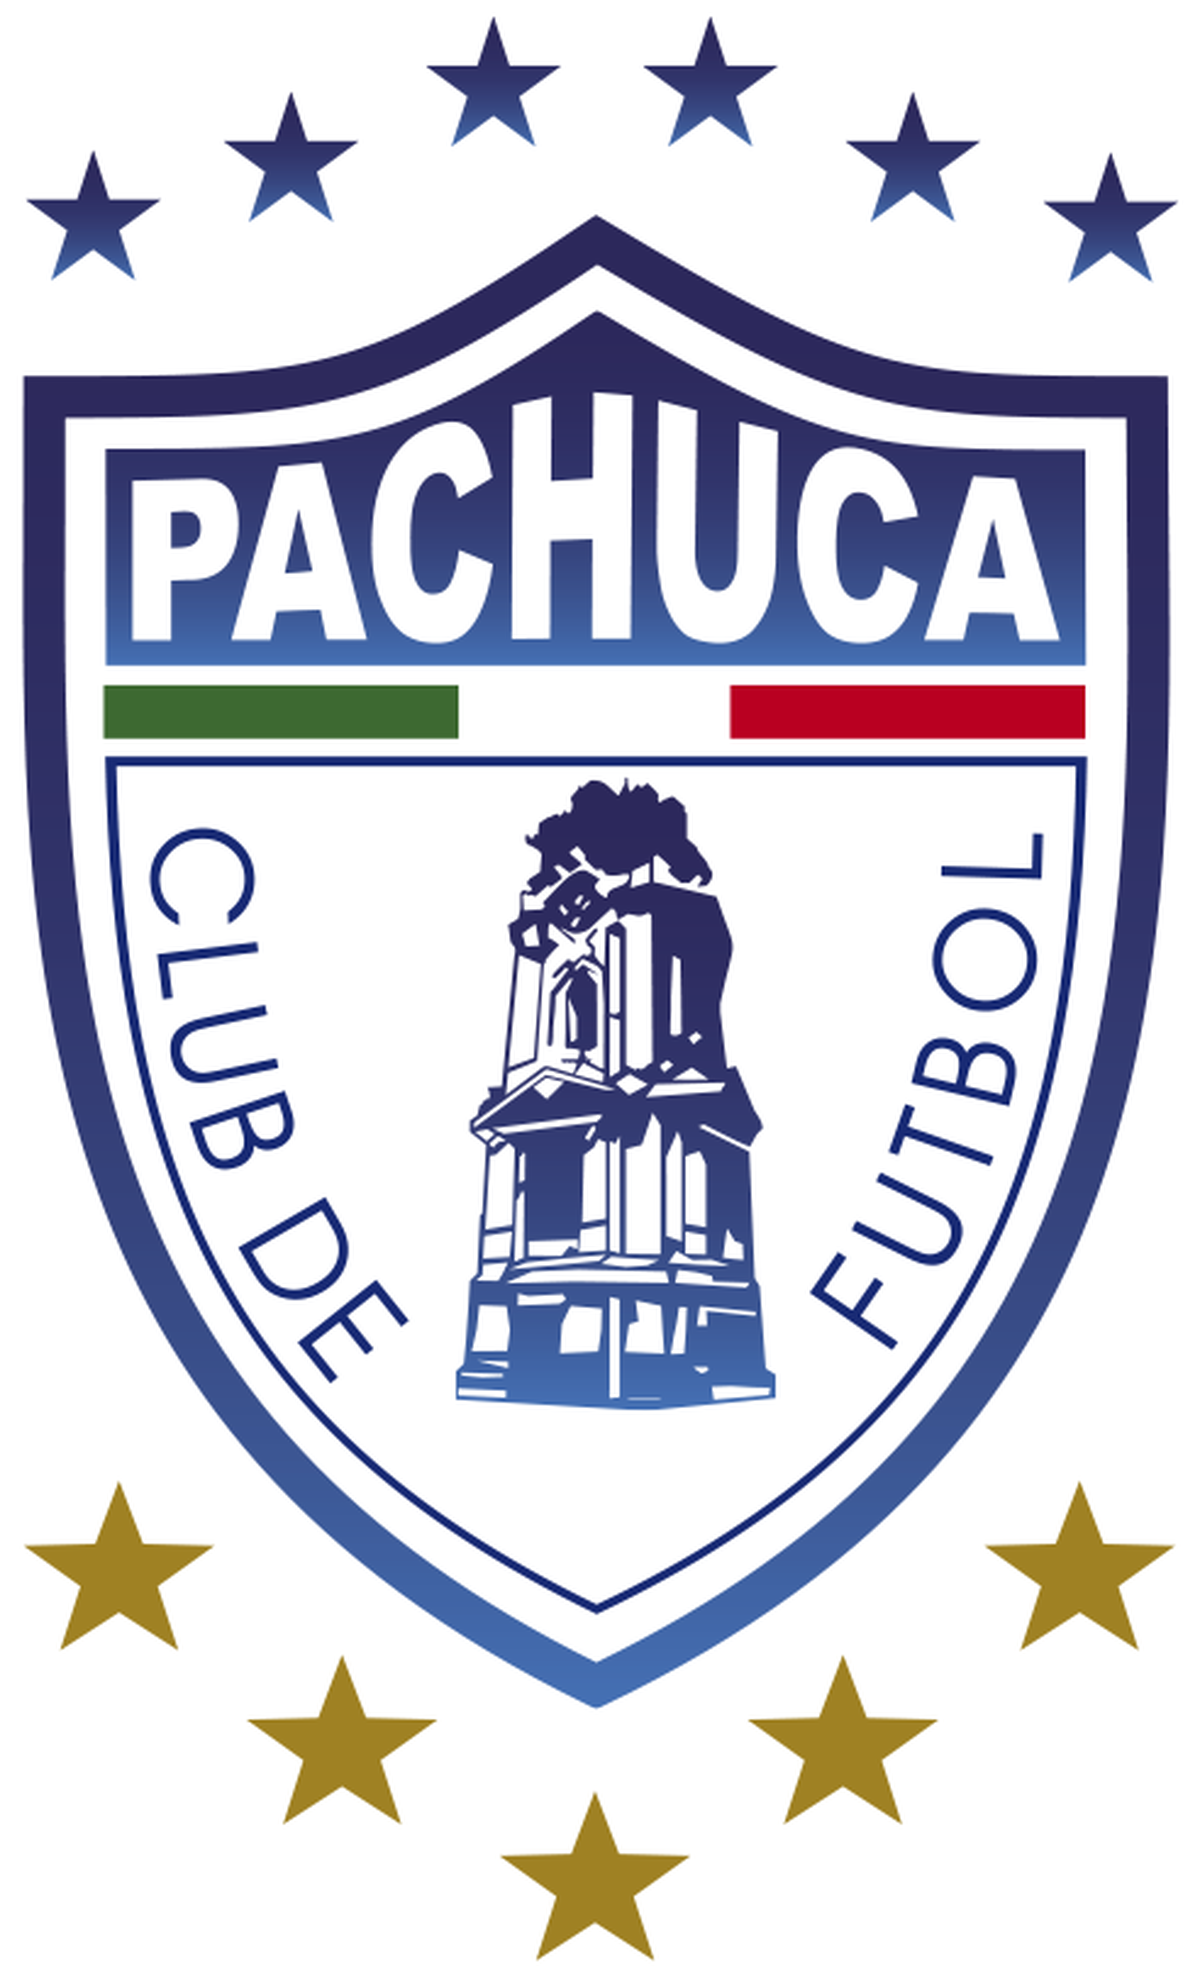 Pachuca drawing chola. Concacaf champions league semifinals